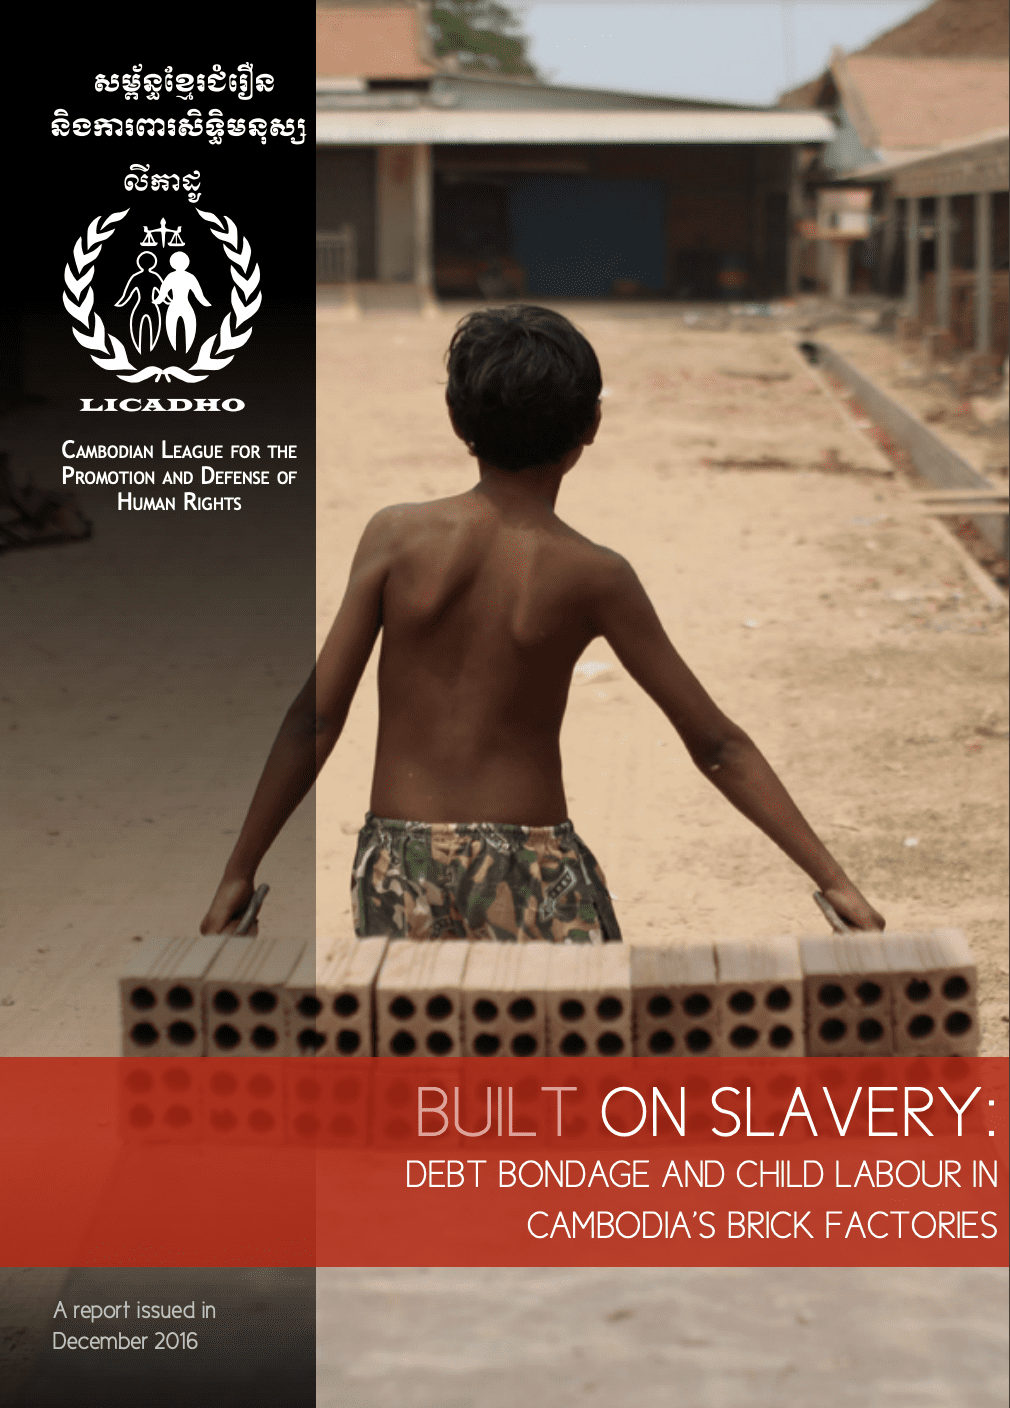 Built on Slavery: Debt Bondage and Child Labour in Cambodia's Brick Factories